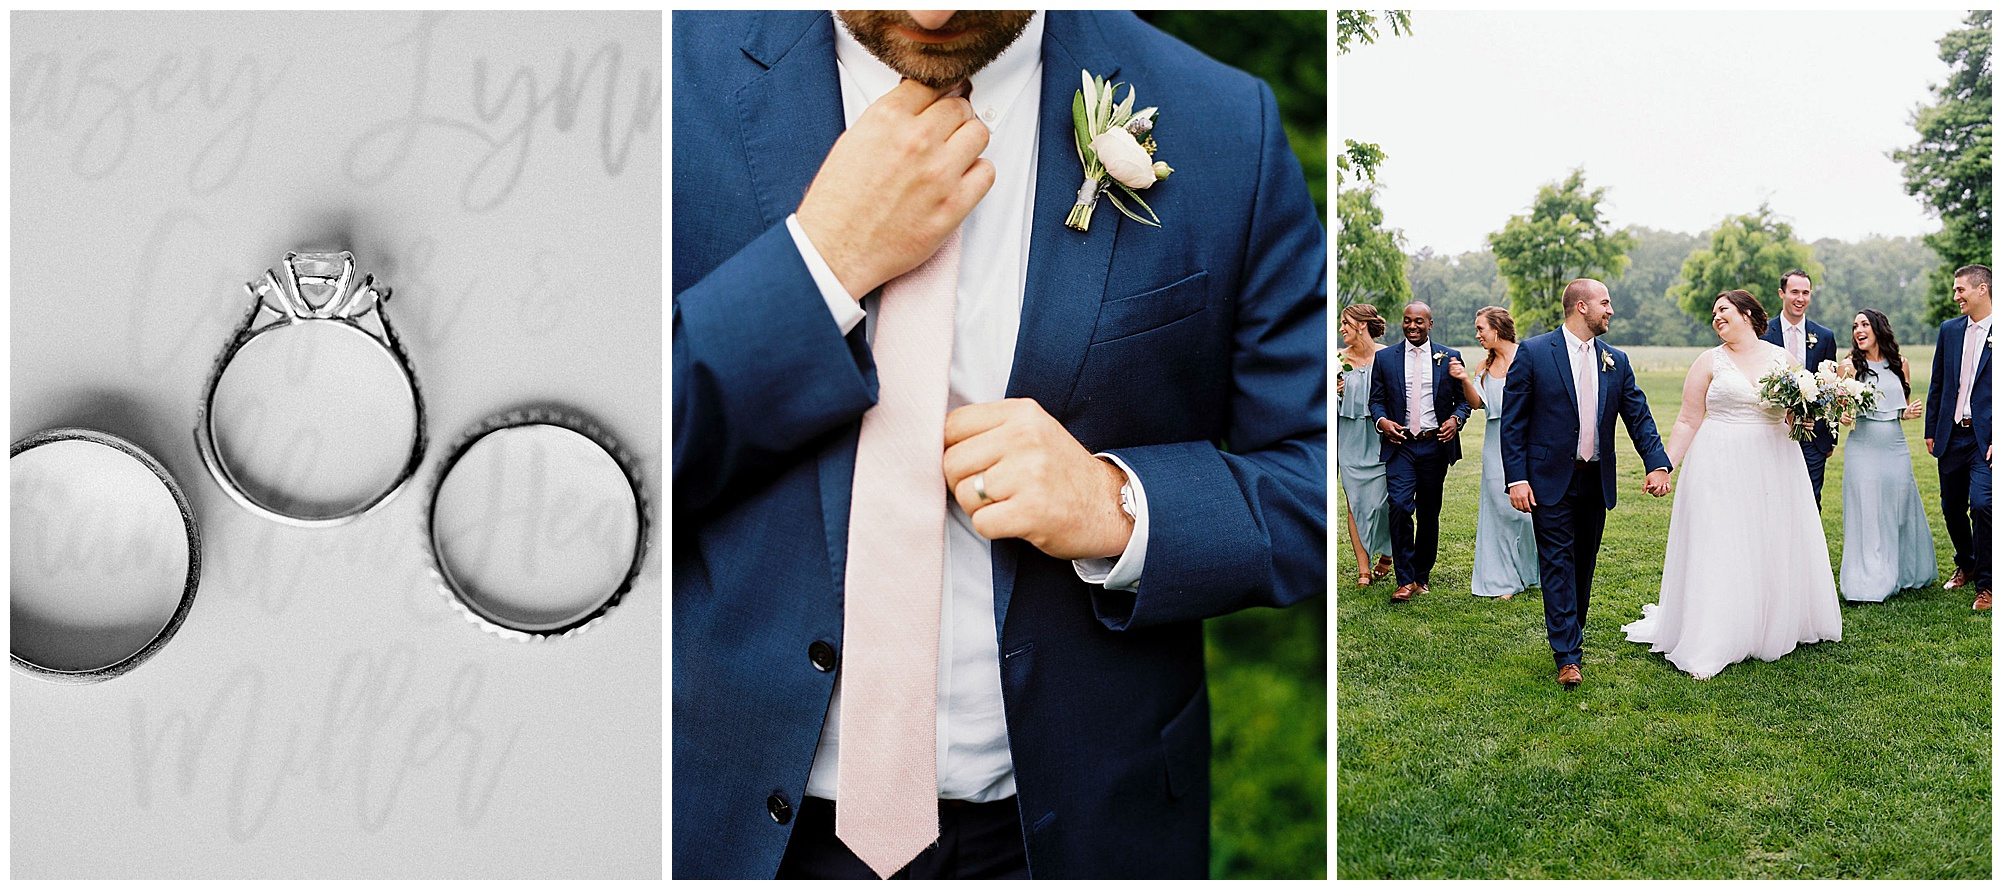 wedding ring set and groom getting ready photo wearing light pink tie with romantic boutonnière and photo of happy wedding party and couple outdoors